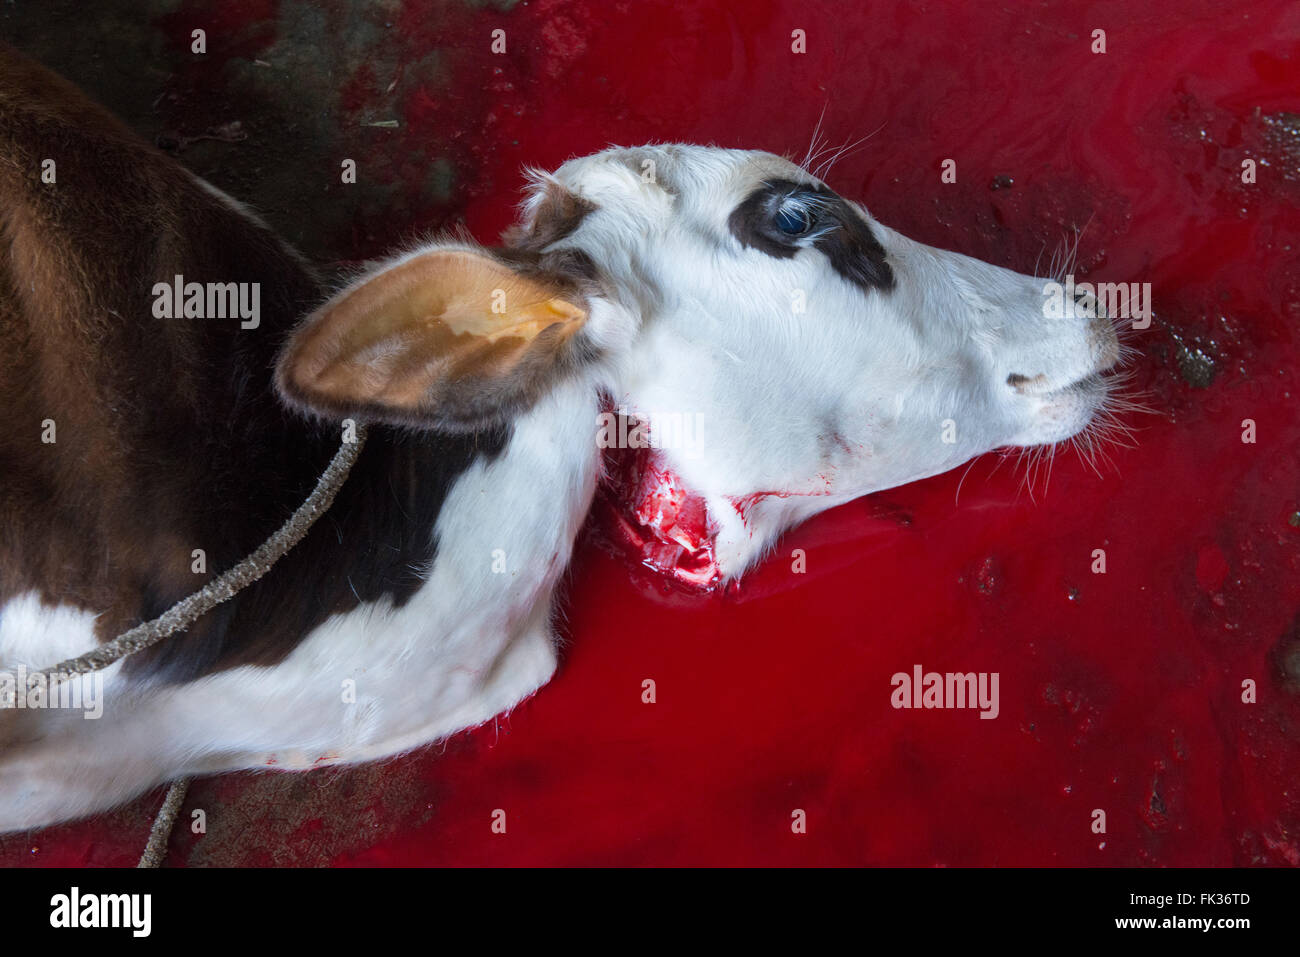 Halal Slaughter Stock Photos & Halal Slaughter Stock Images - Alamy